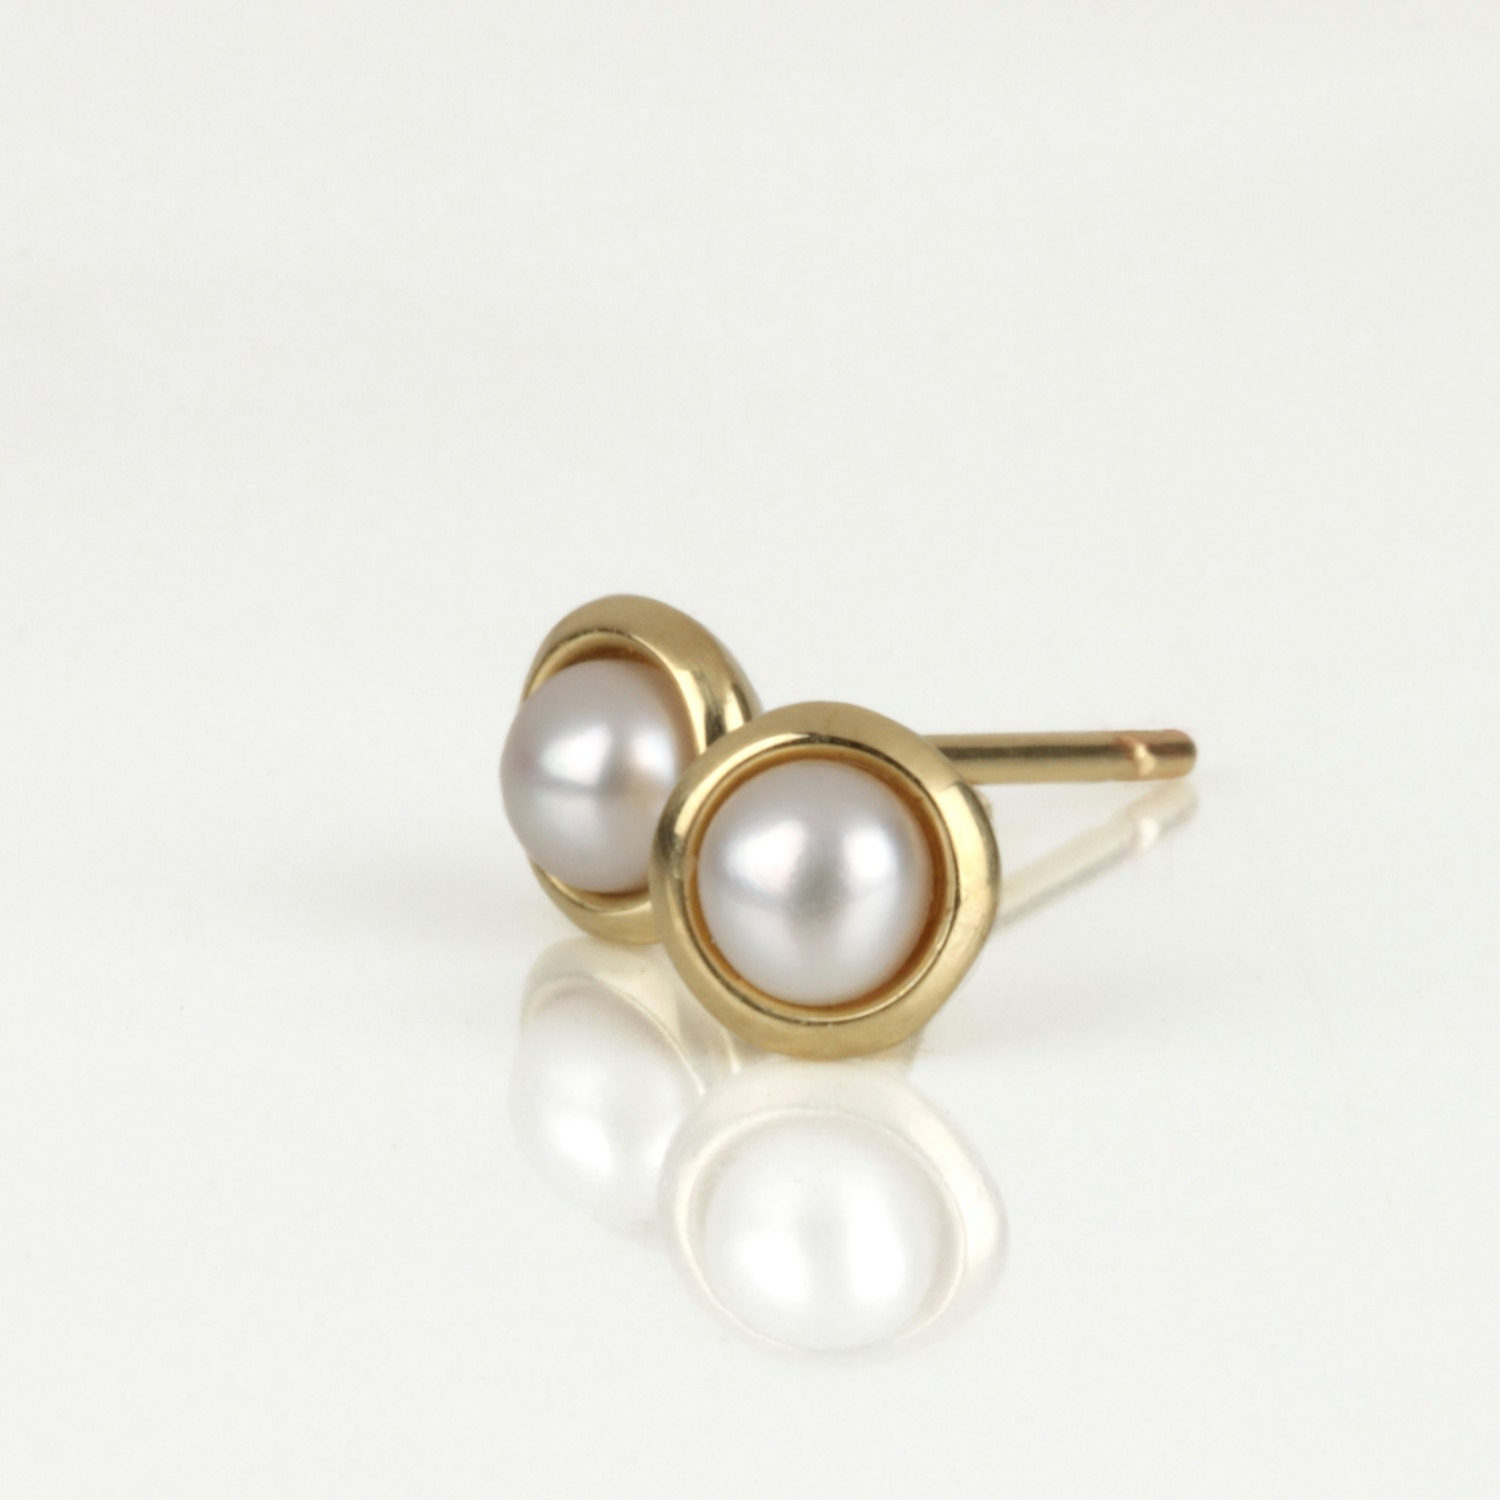 small pearl earrings gold pearl earrings pearl stud earrings